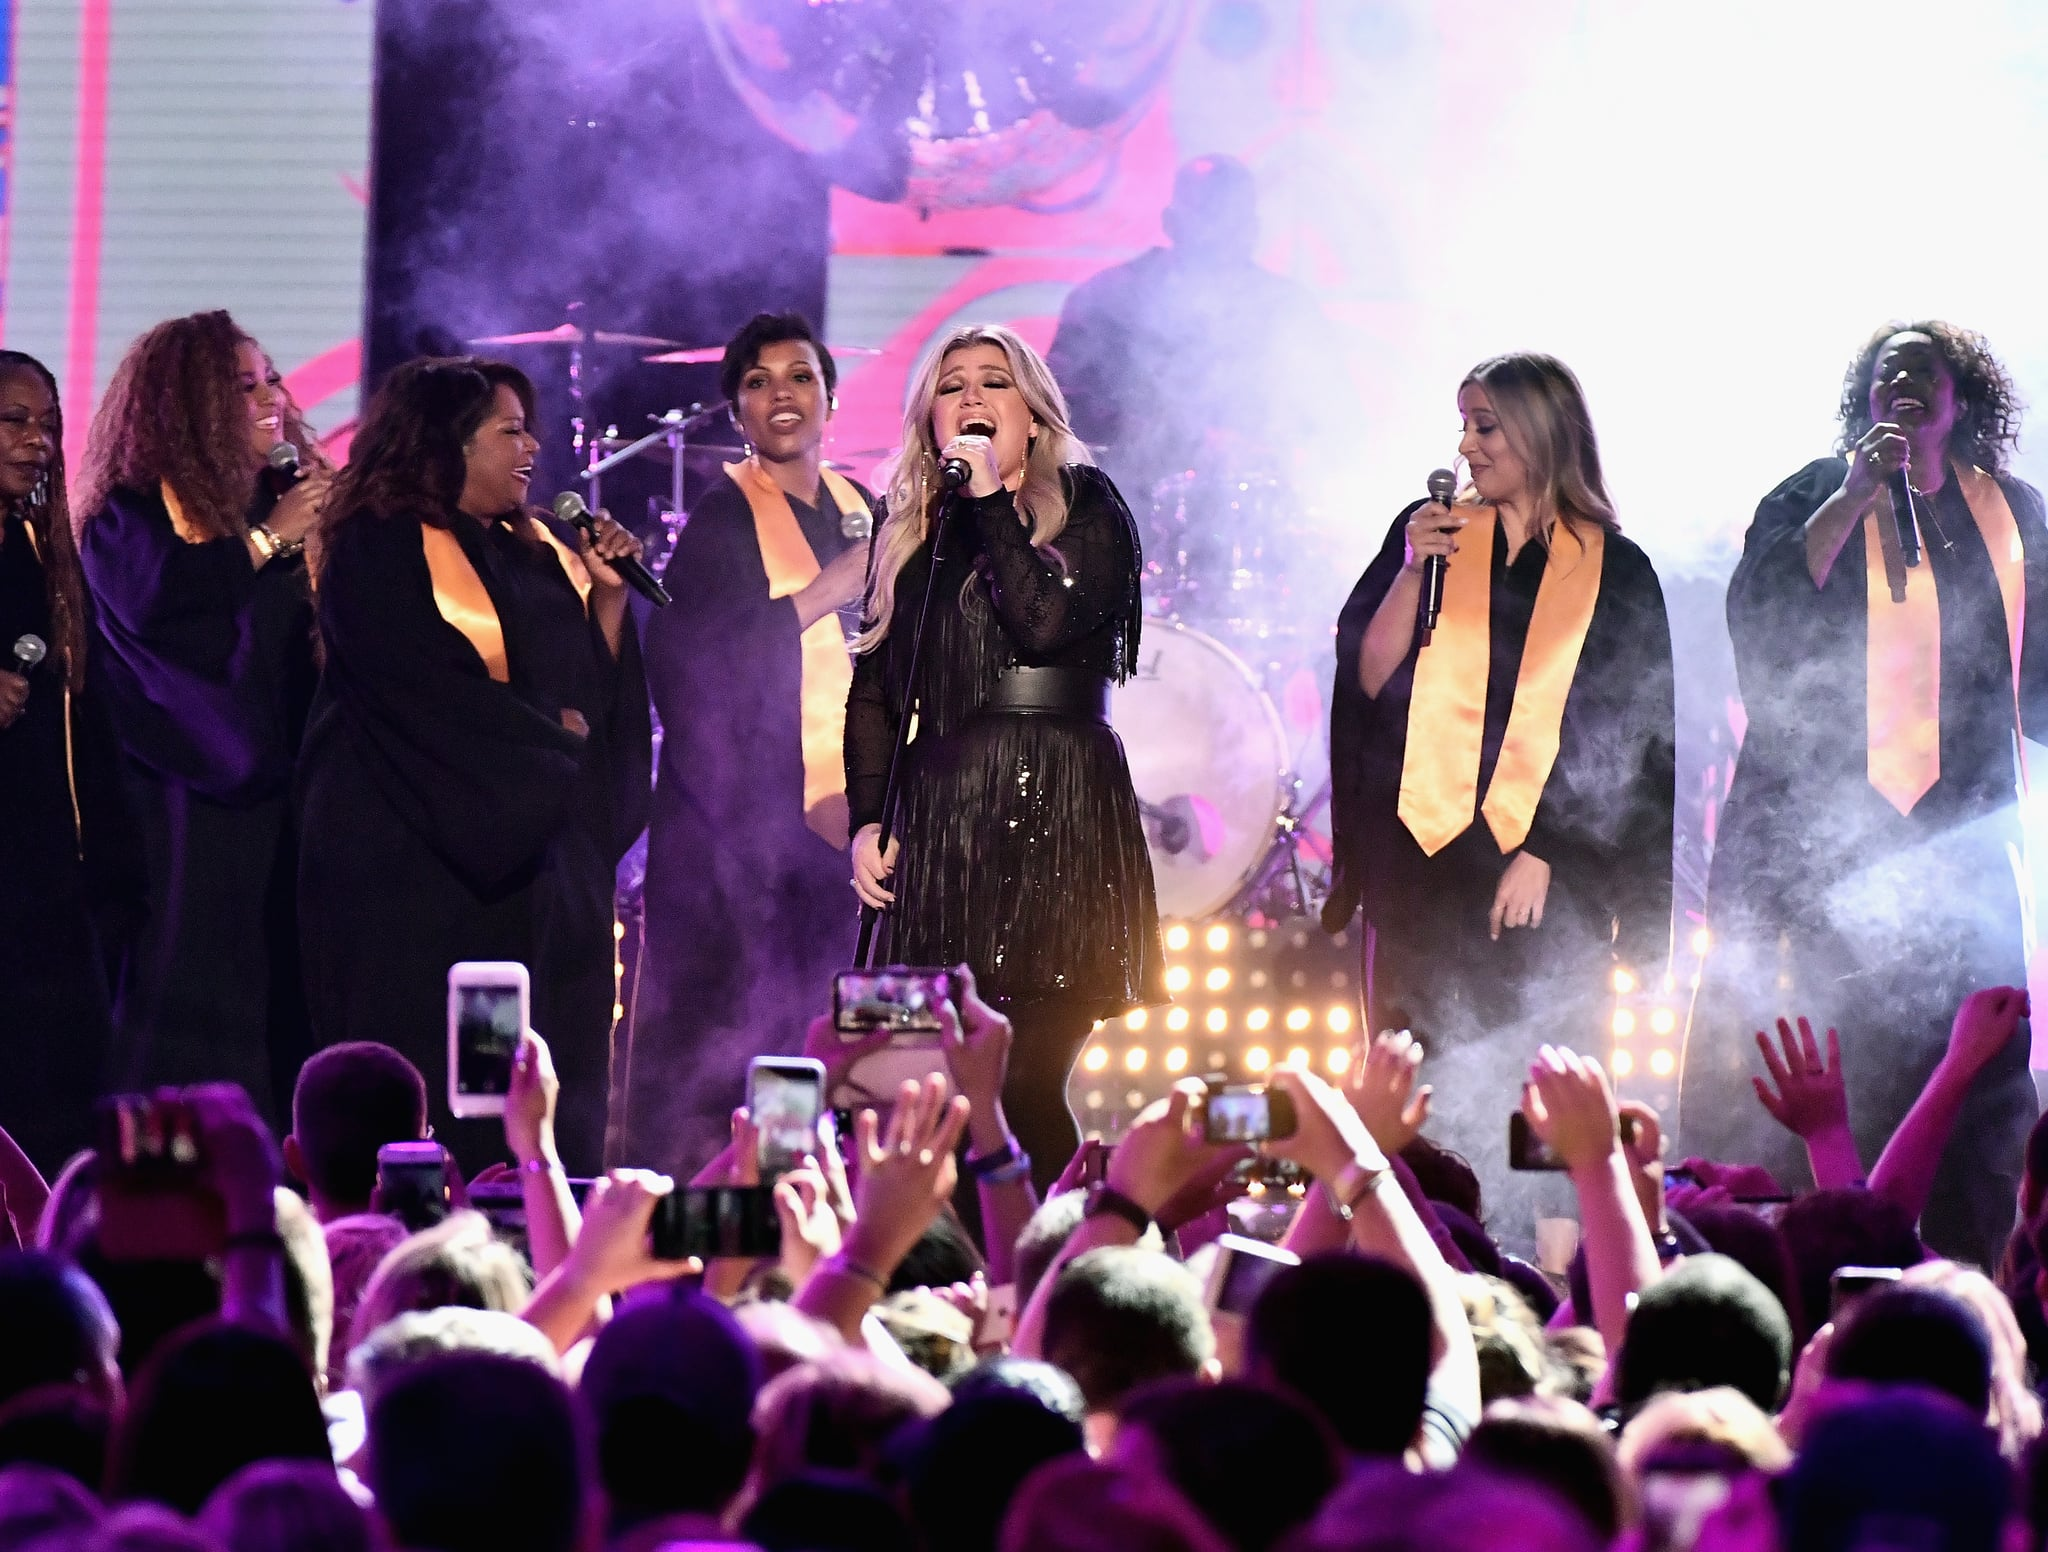 NASHVILLE, TN - JUNE 06:  Kelly Clarkson performs onstage at the 2018 CMT Music Awards at Bridgestone Arena on June 6, 2018 in Nashville, Tennessee.  (Photo by Michael Loccisano/WireImage)